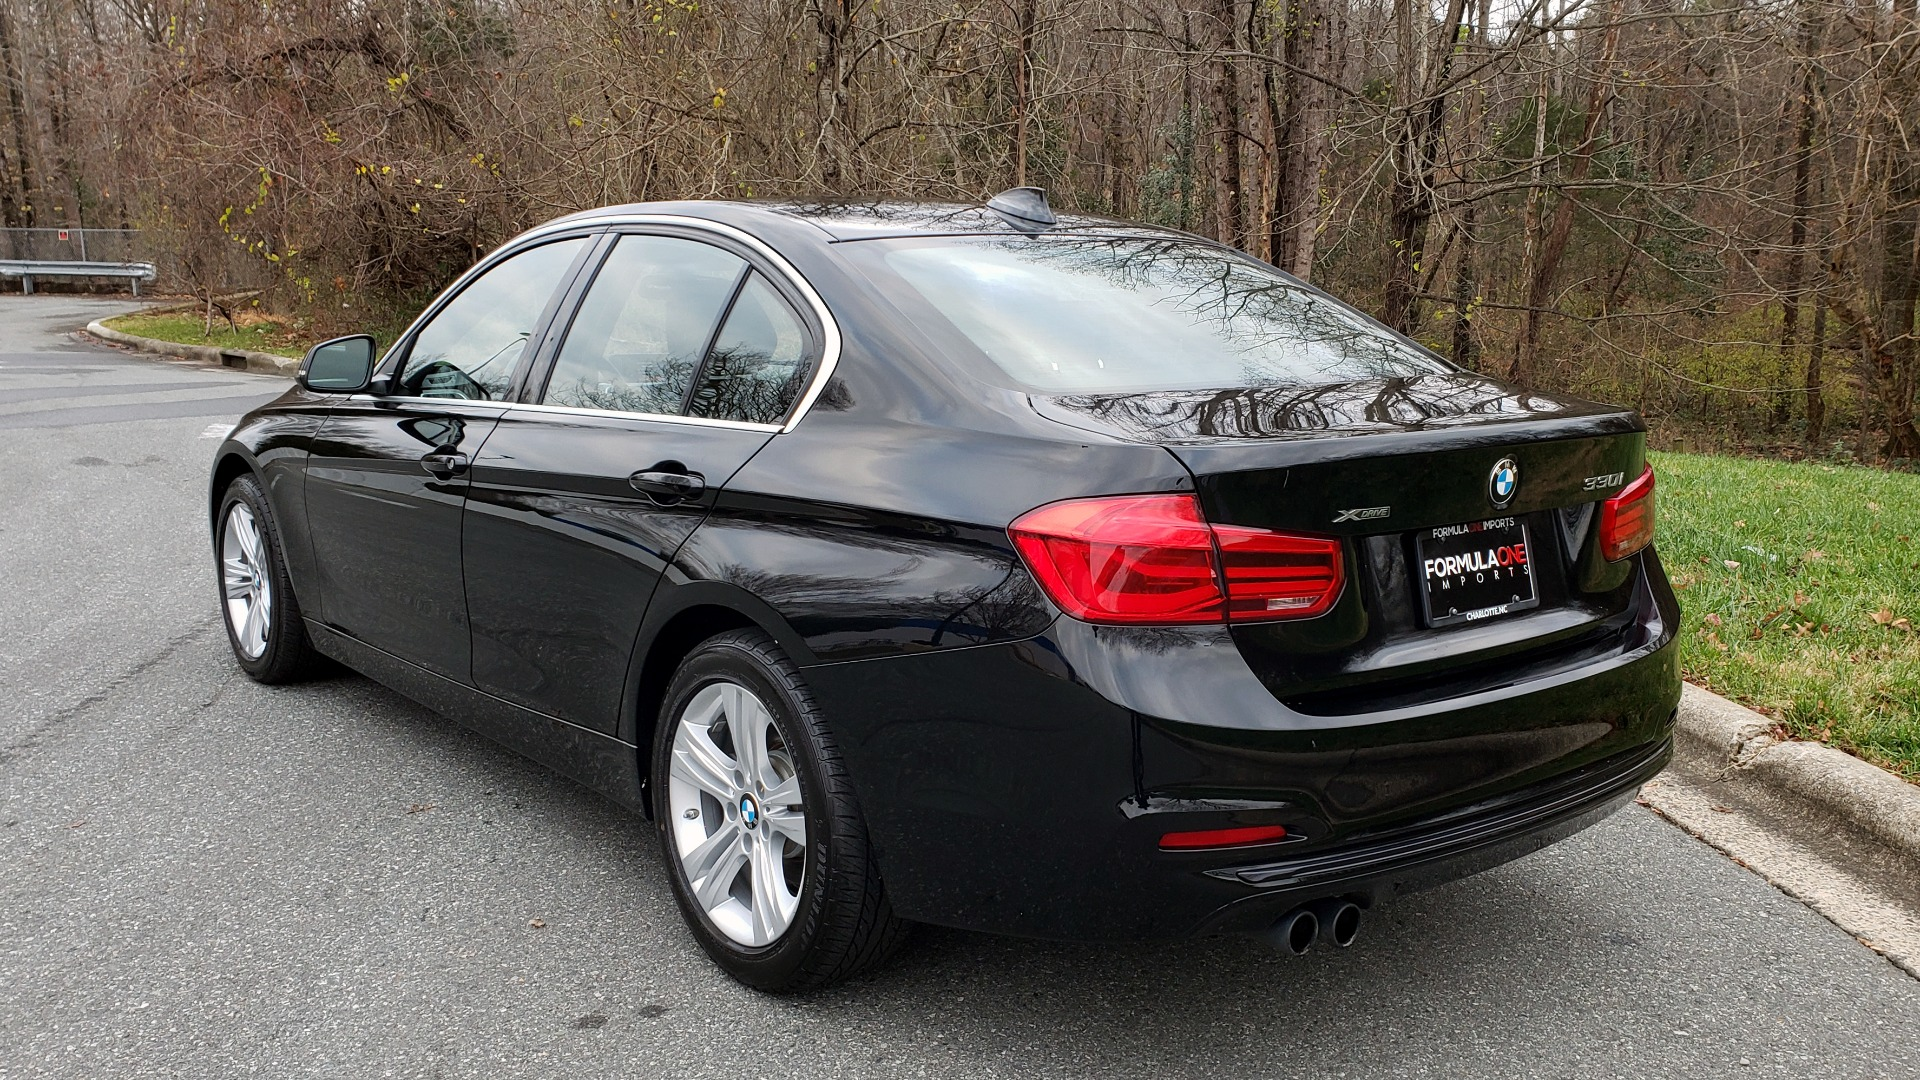 Used 2017 BMW 3 SERIES 330I XDRIVE / AWD / HEATED SEATS / LOW MILES for sale $23,495 at Formula Imports in Charlotte NC 28227 3